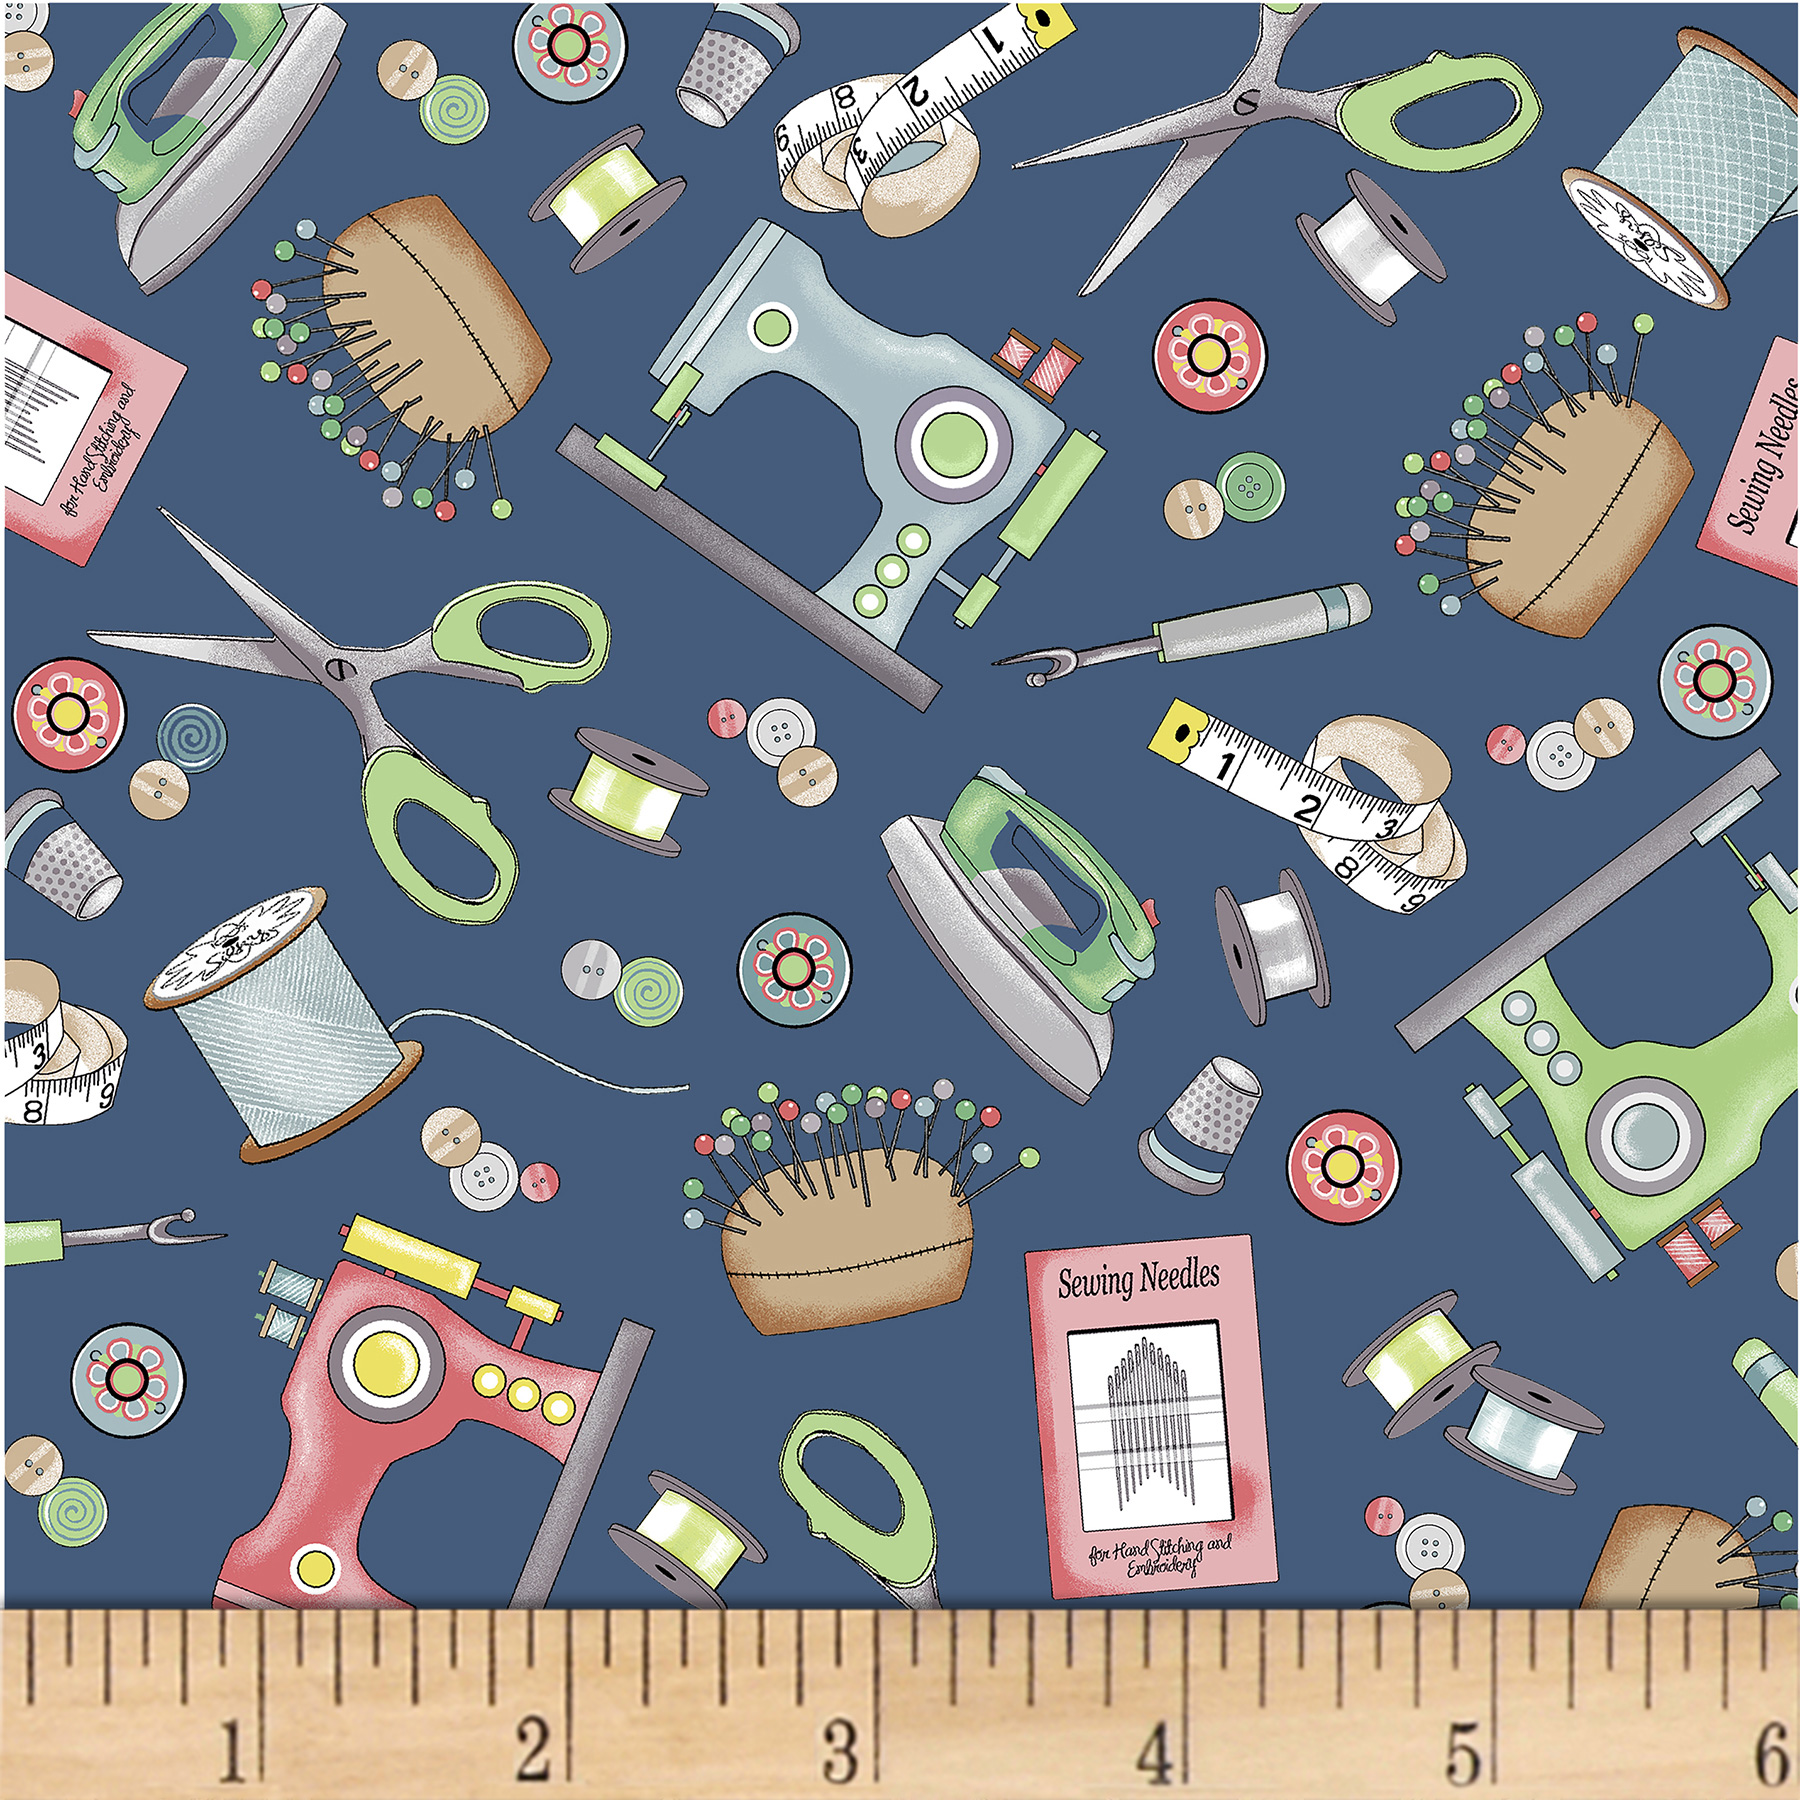 INOpets.com Anything for Pets Parents & Their Pets Betterstitch Sewing Tools Dark Blue Fabric